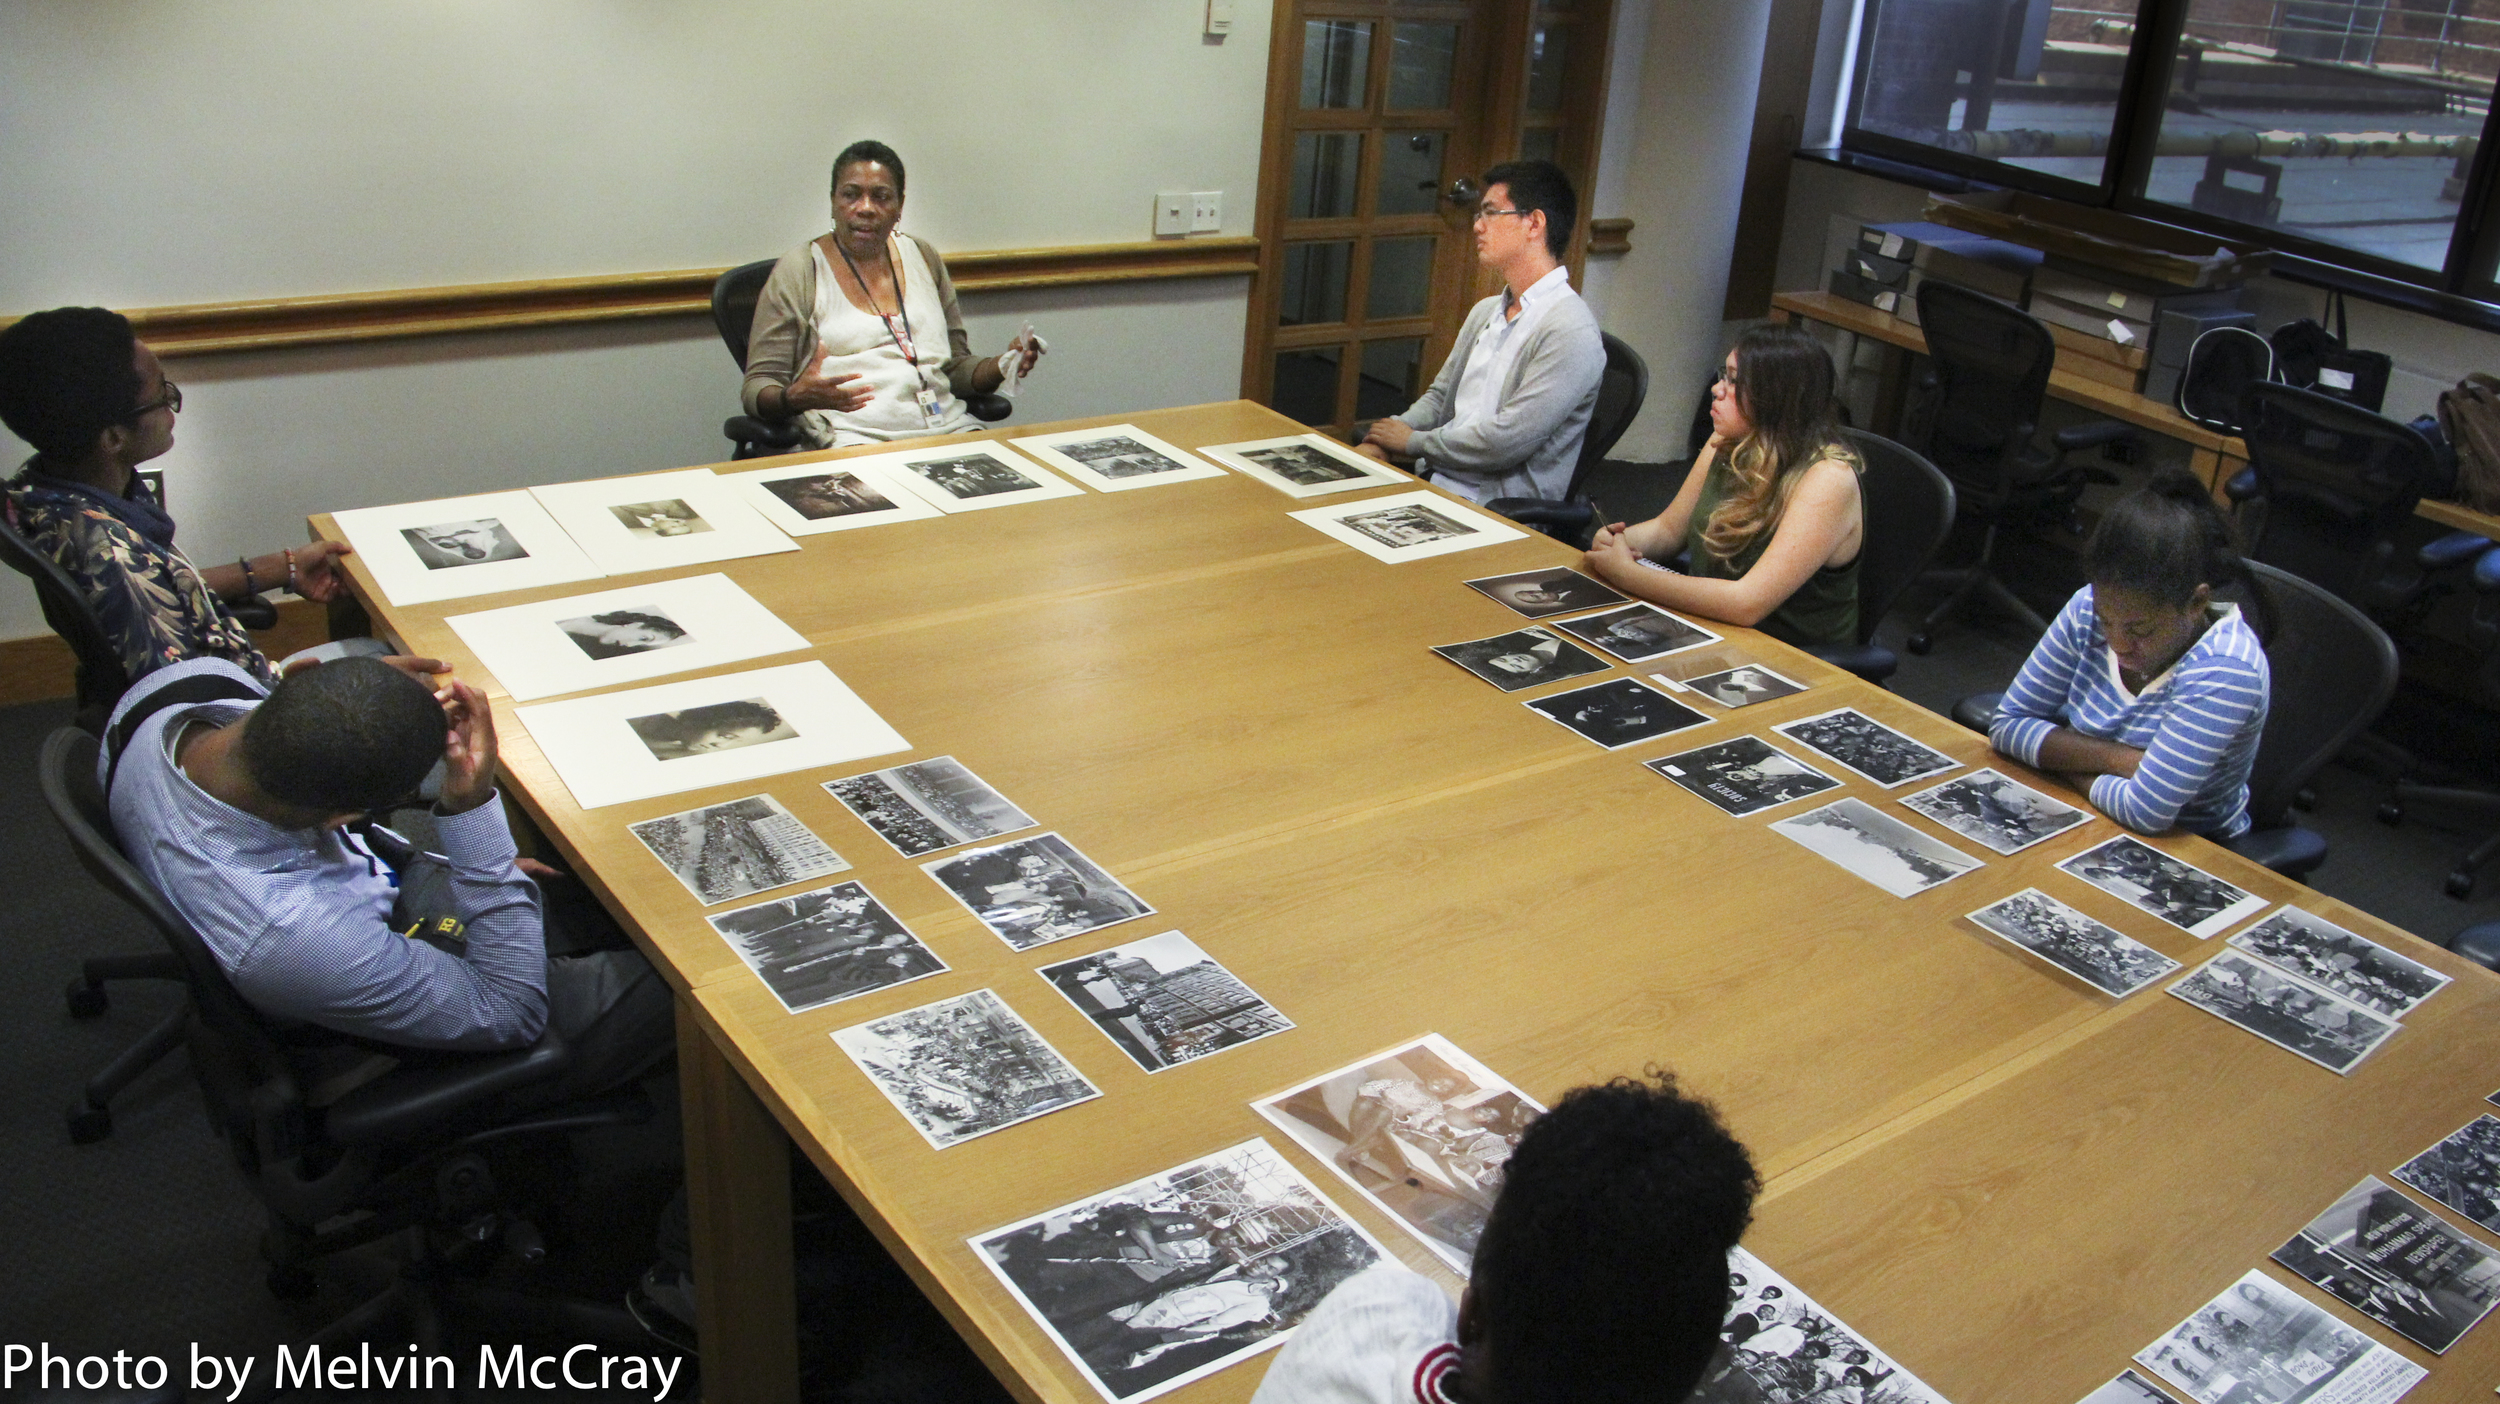 Mary Yearwood photography curator at the Schomberg Library letcuring to DMTP Students-27.jpg